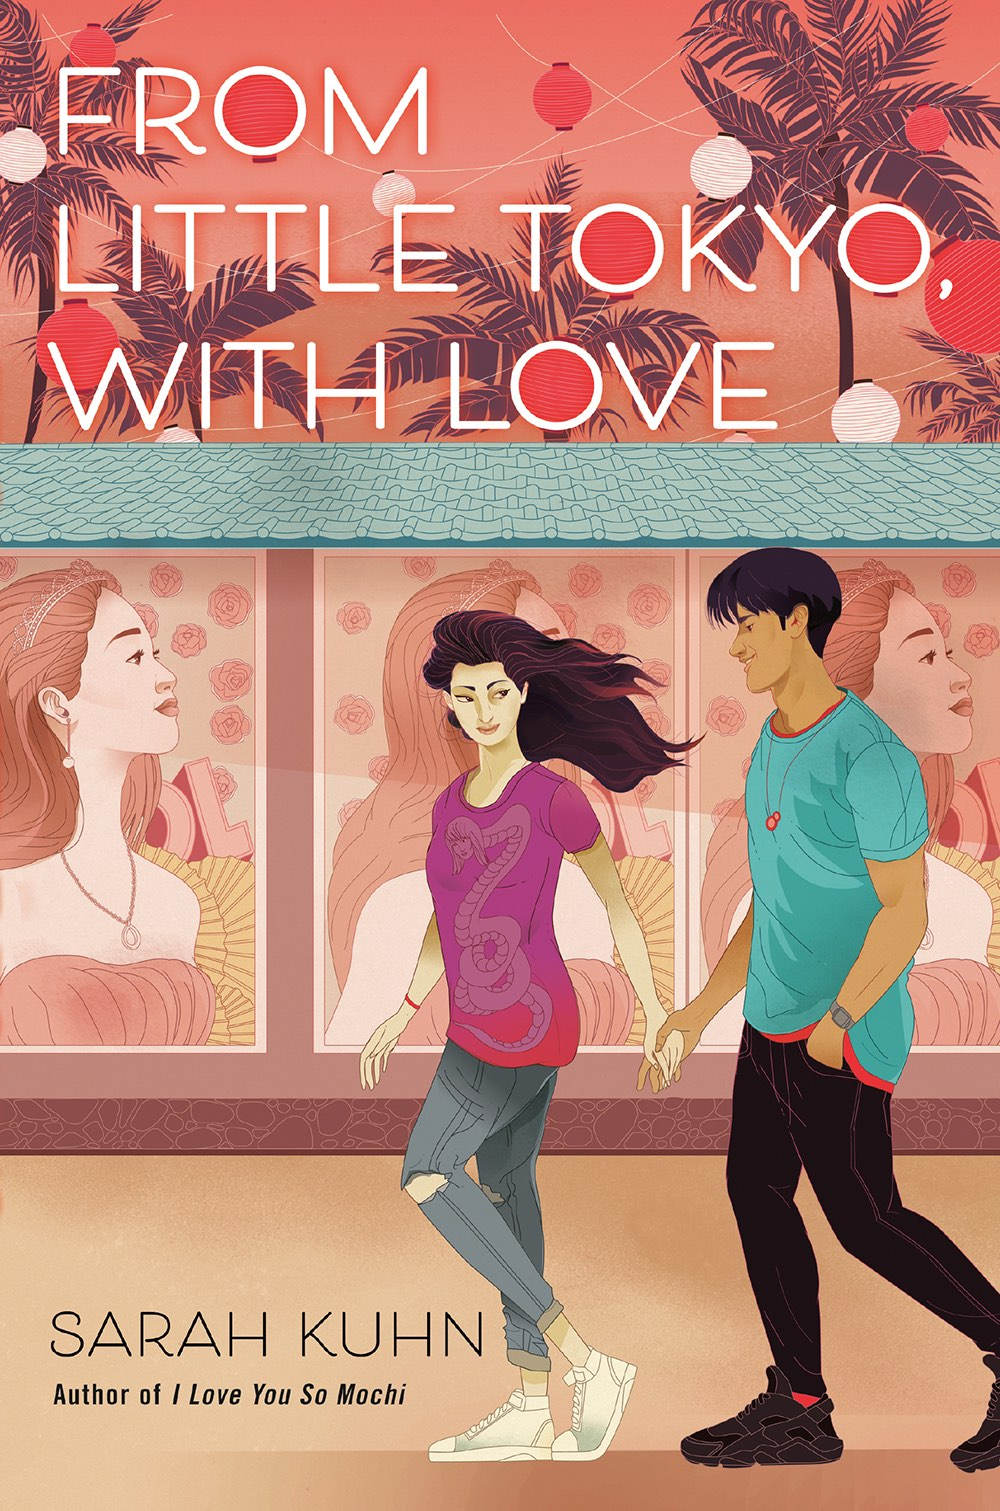 Book Review: From Little Tokyo, with Love by Sarah Kuhn